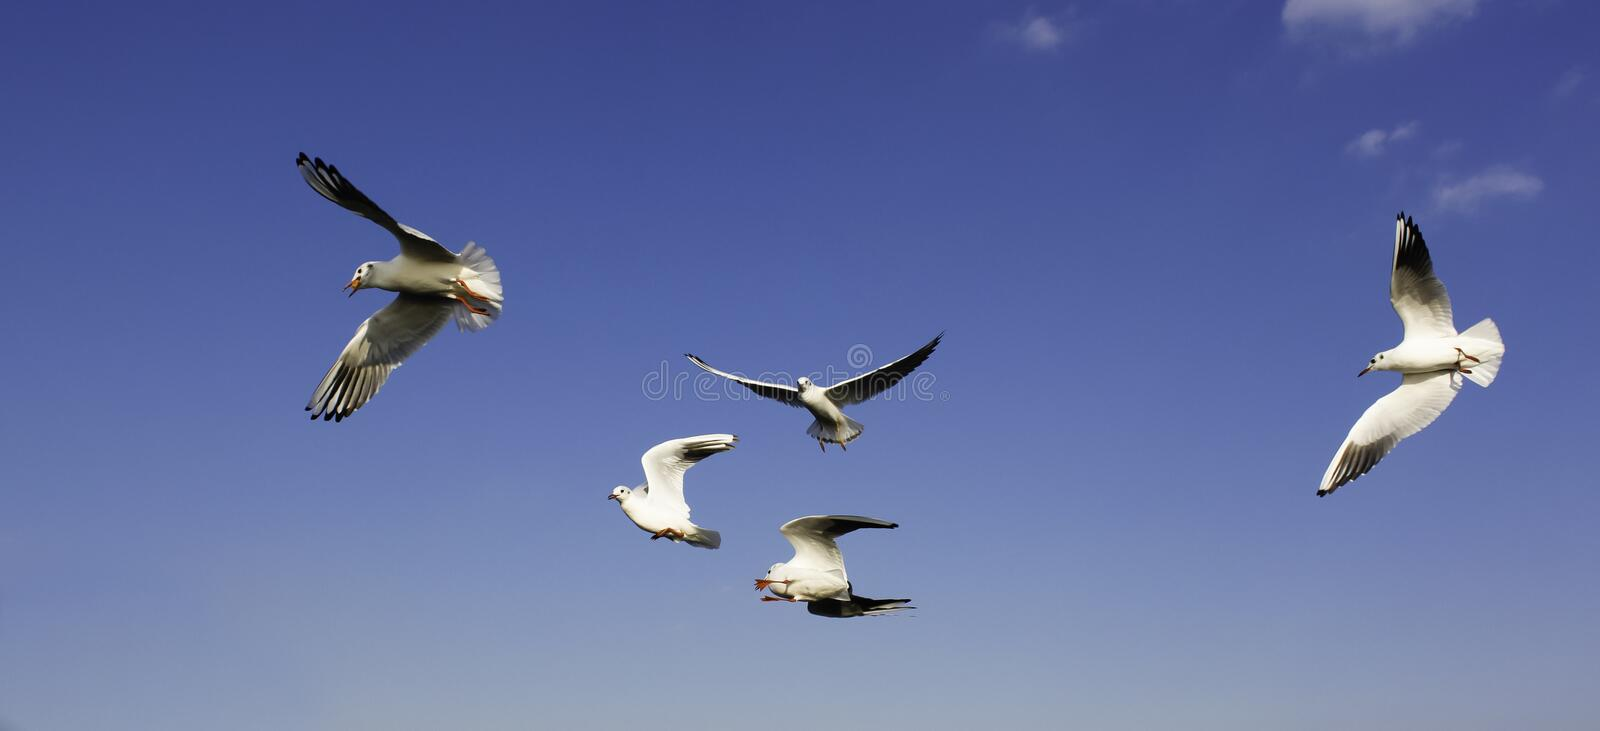 Download Seagulls stock photo. Image of swirl, flying, blue, free - 27534732